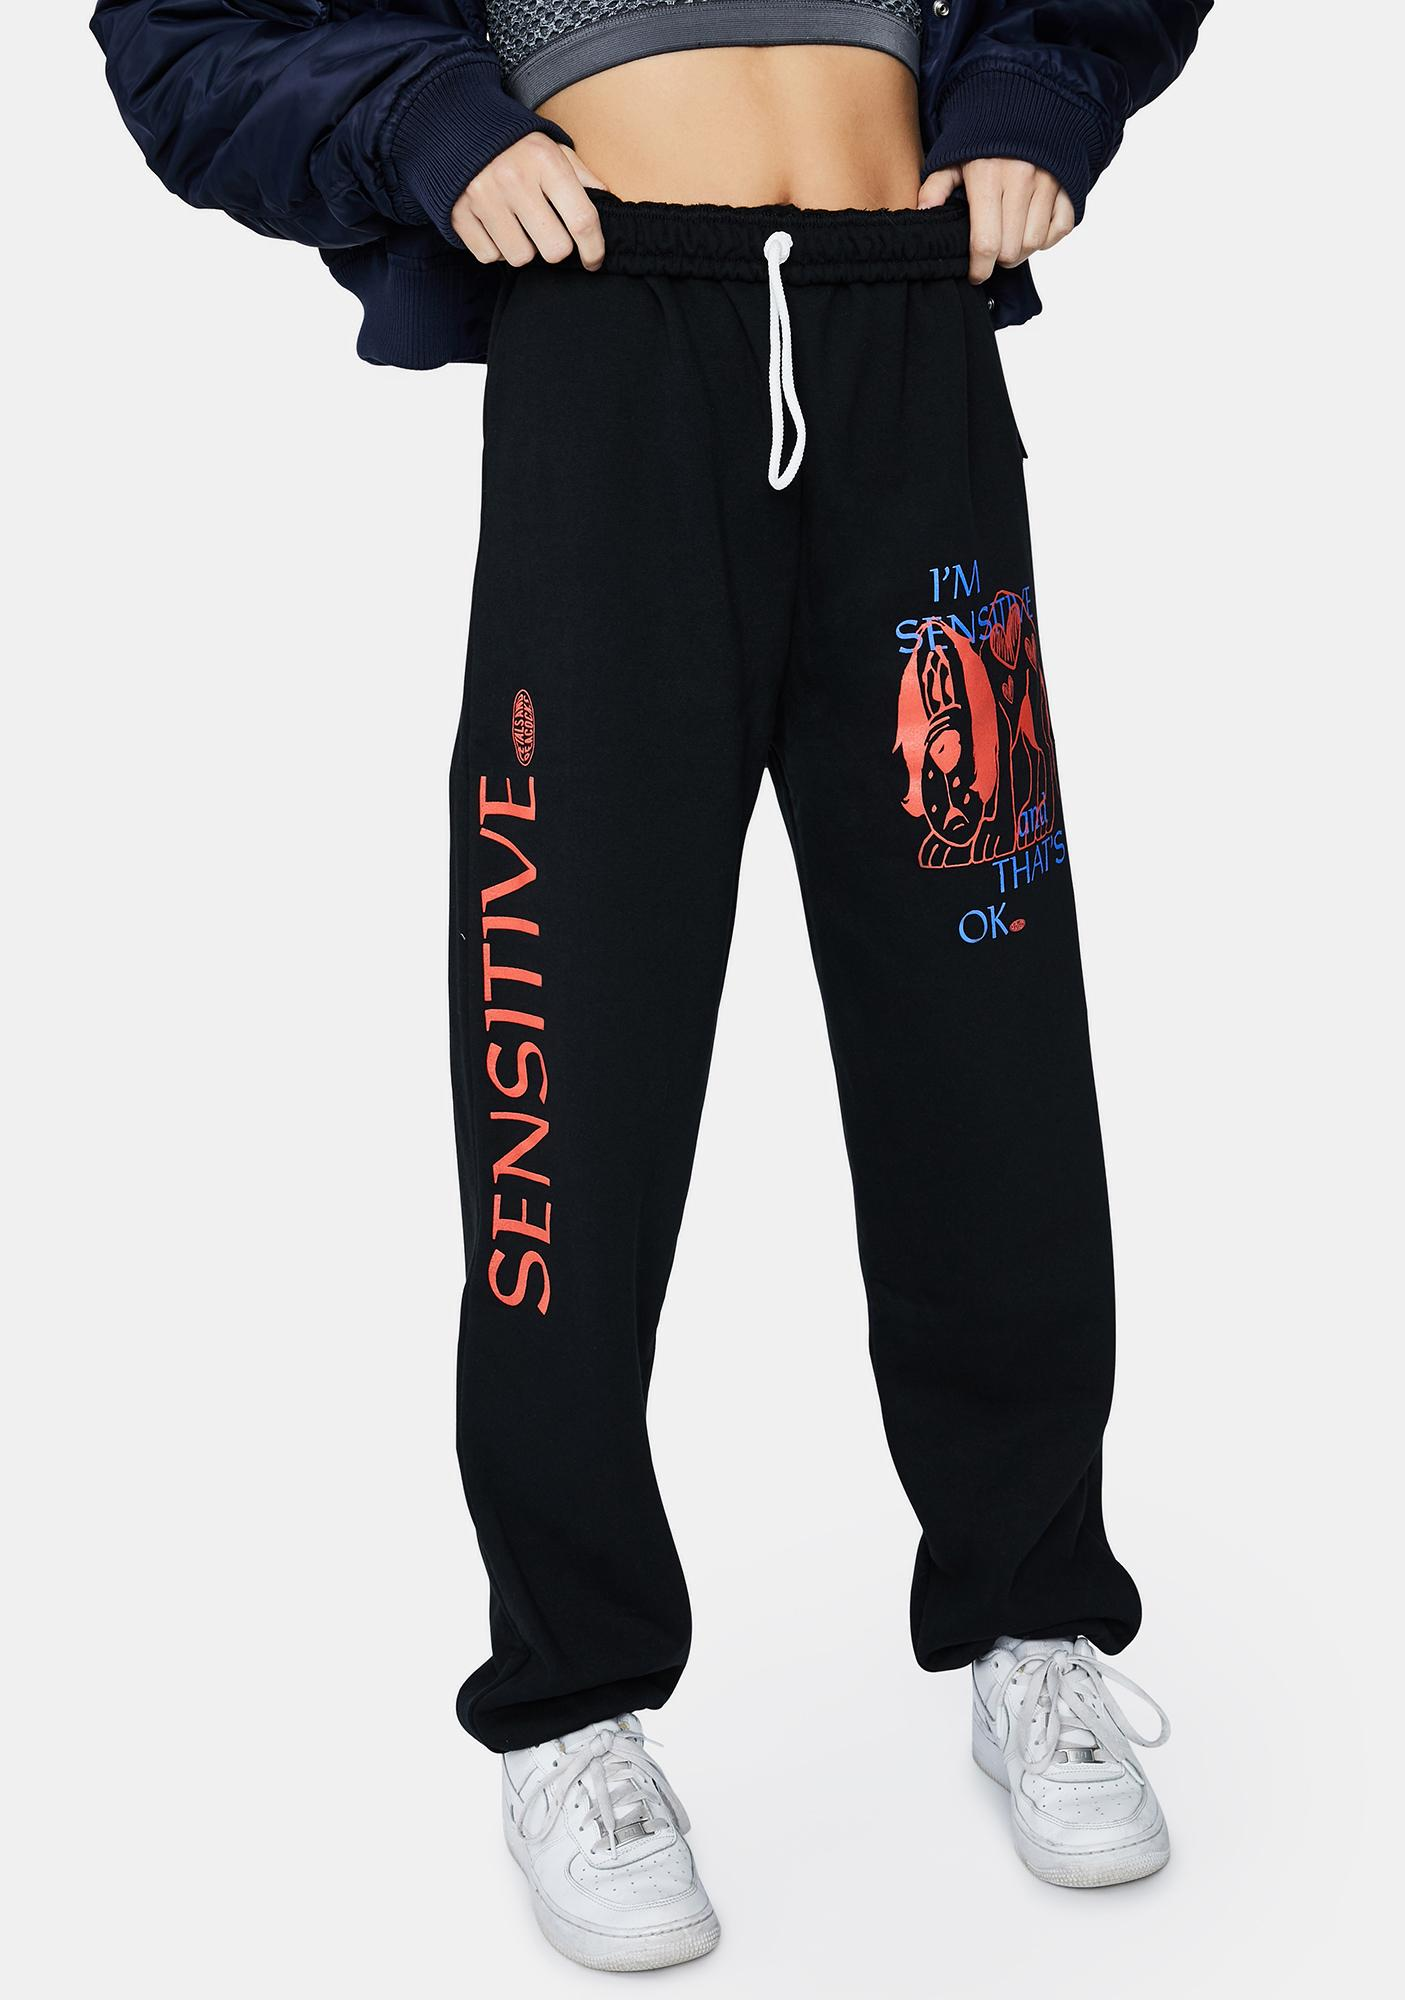 Petals and Peacocks Sensitive Graphic Sweatpants